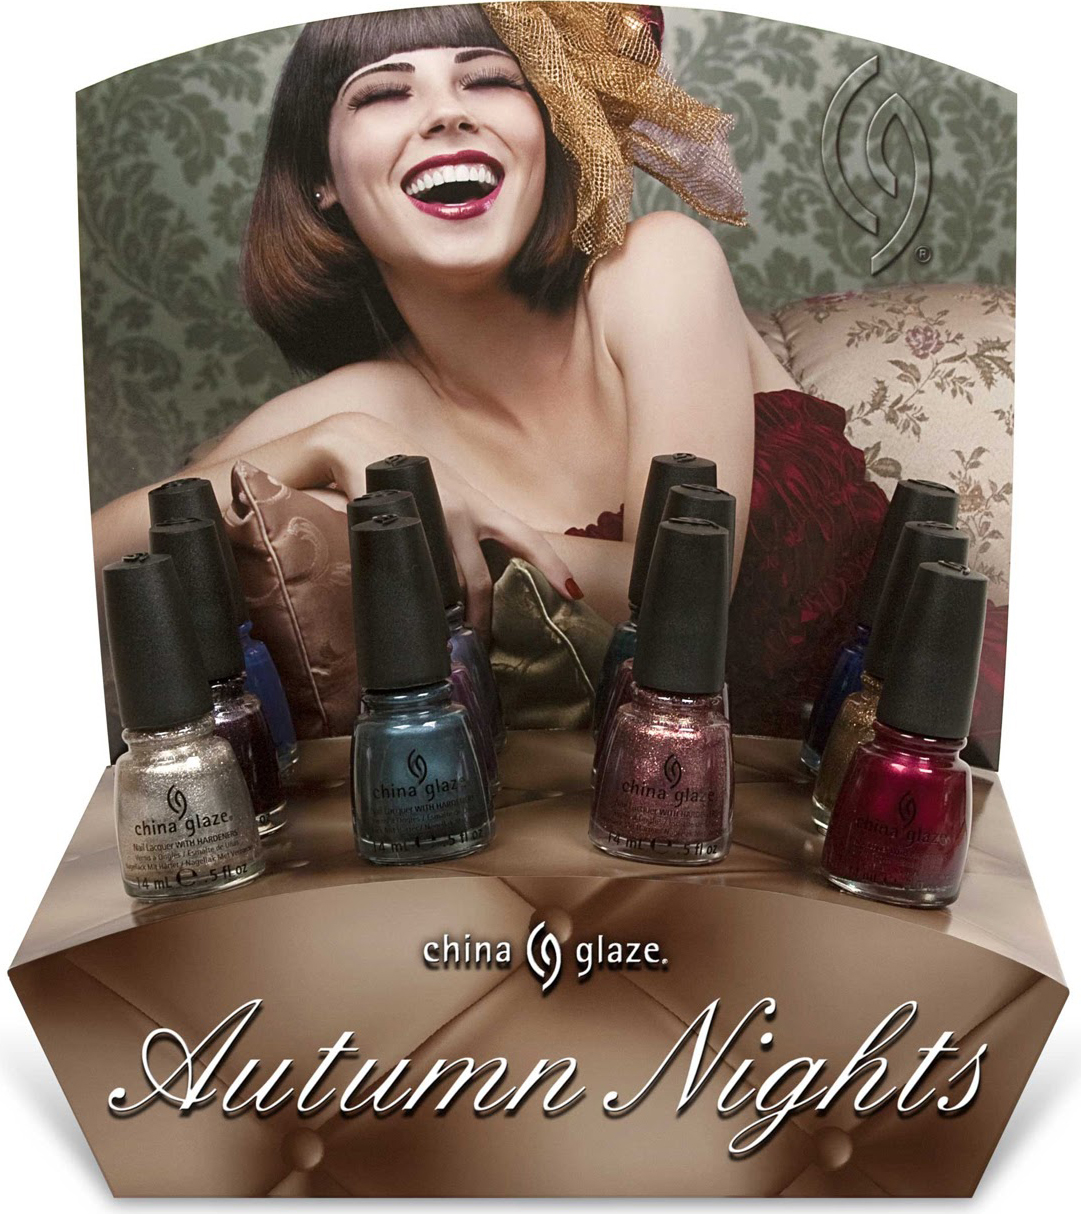 China Glaze Autumn Nights (Fall 2013)